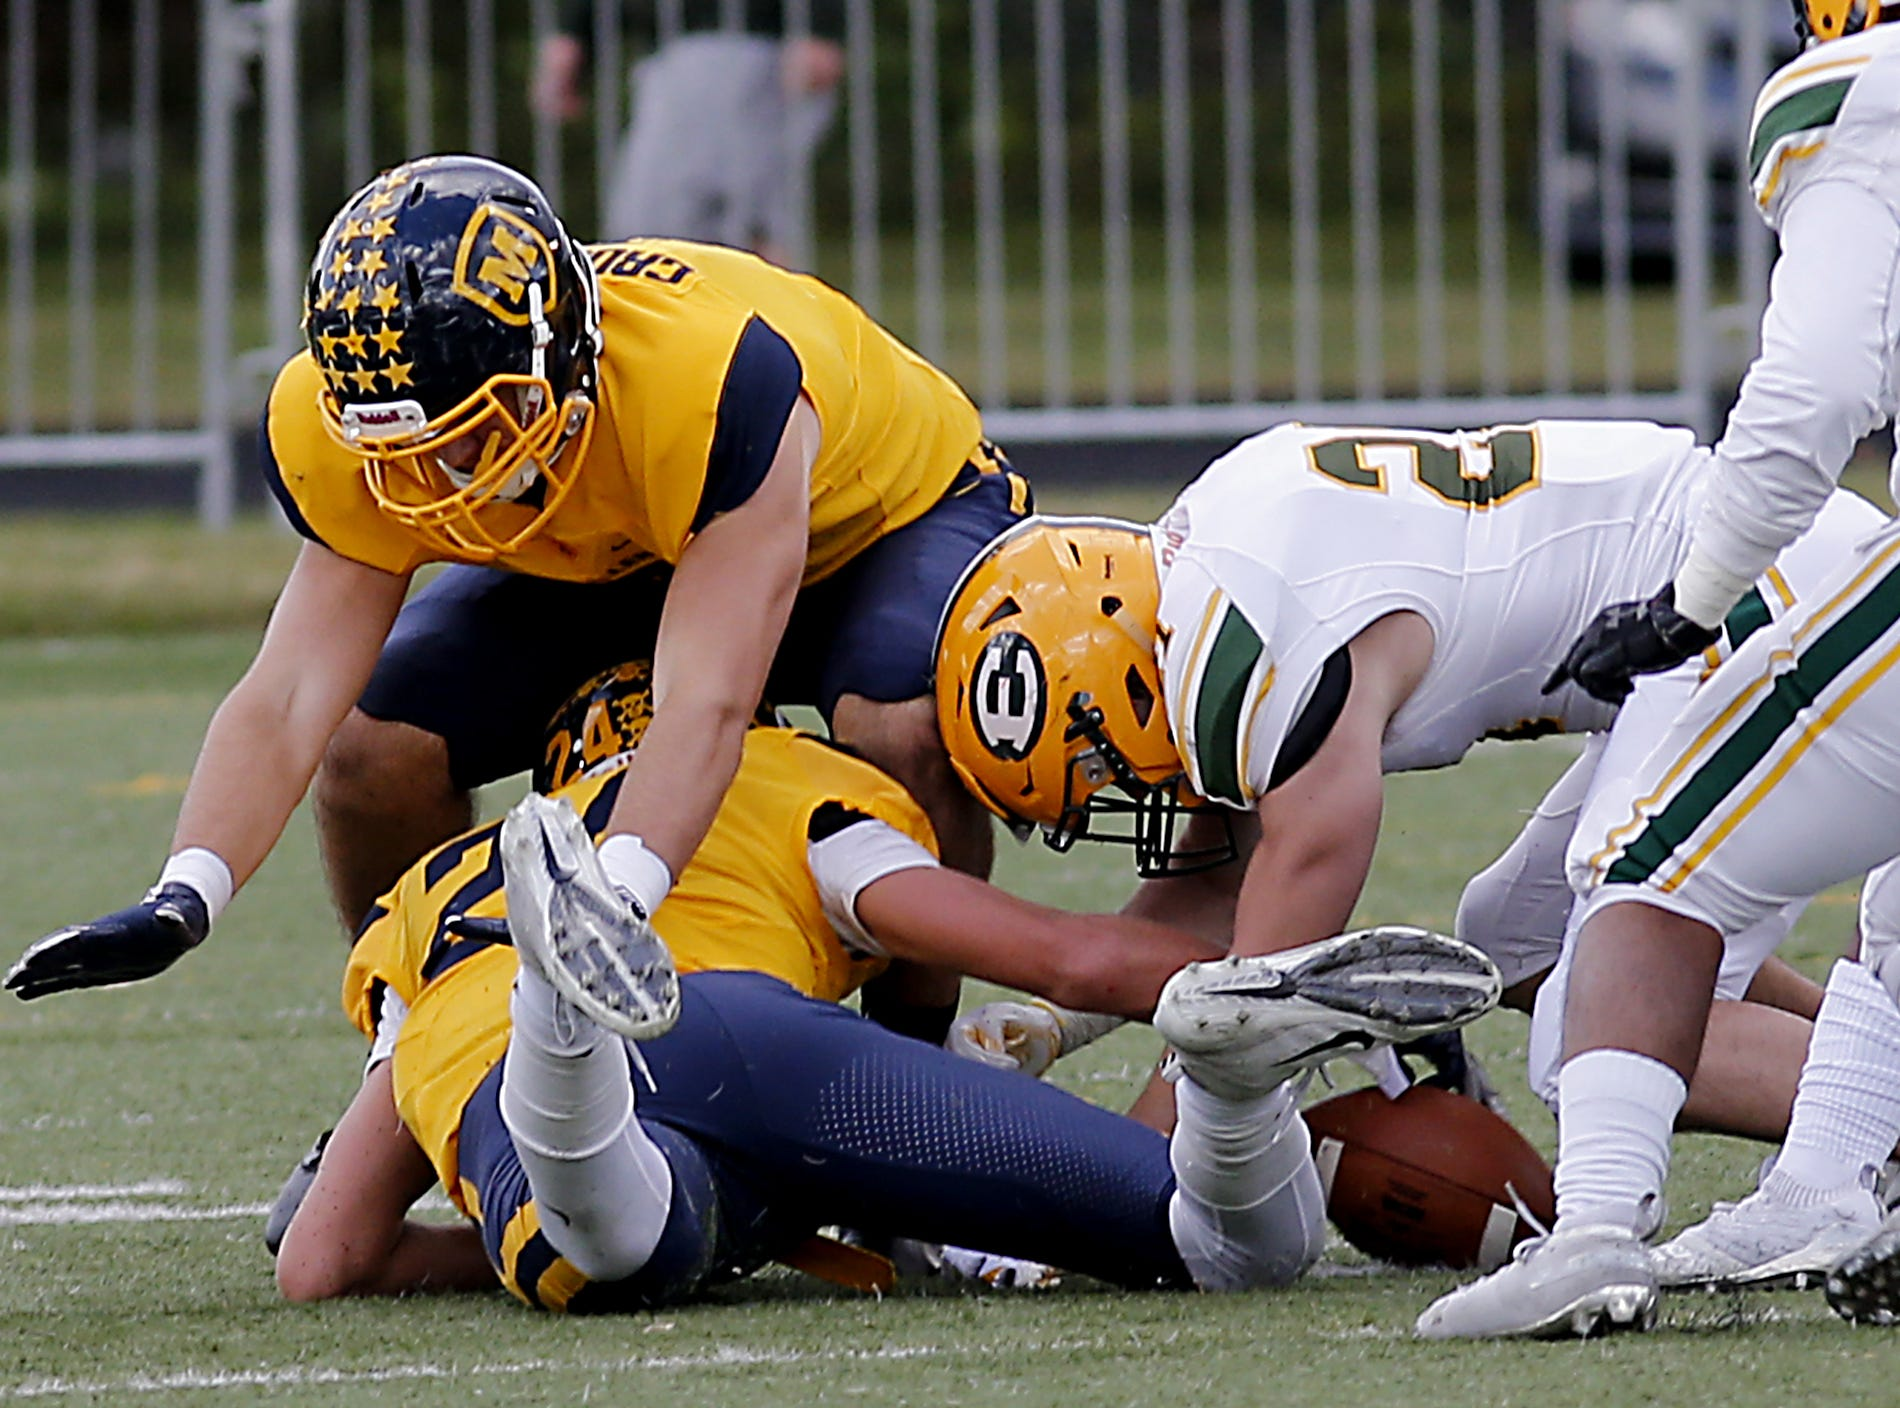 Moeller defensive back Braedon Junker can't recover a fumble as Lakewood St. Edward lands on the loose ball during their game at Lockland Saturday, Oct. 20, 2018.